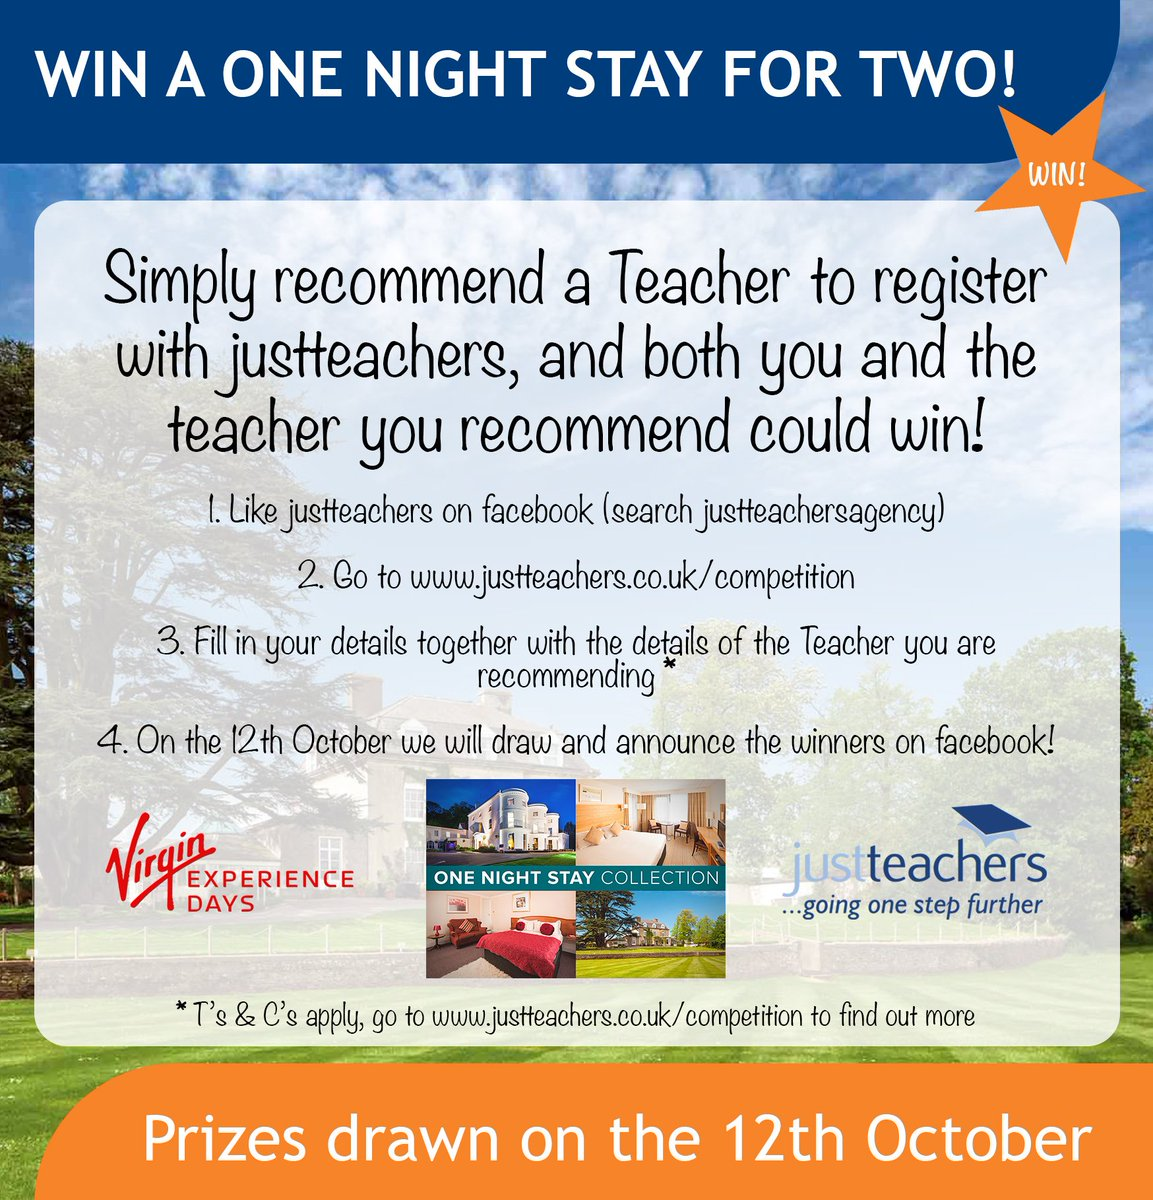 test Twitter Media - #WorldTeachersDay COMPETITION TIME! Recommend a teacher to register with us & you could win a one night stay for two!https://t.co/asTm5ciS55 https://t.co/jwza8yO8jM